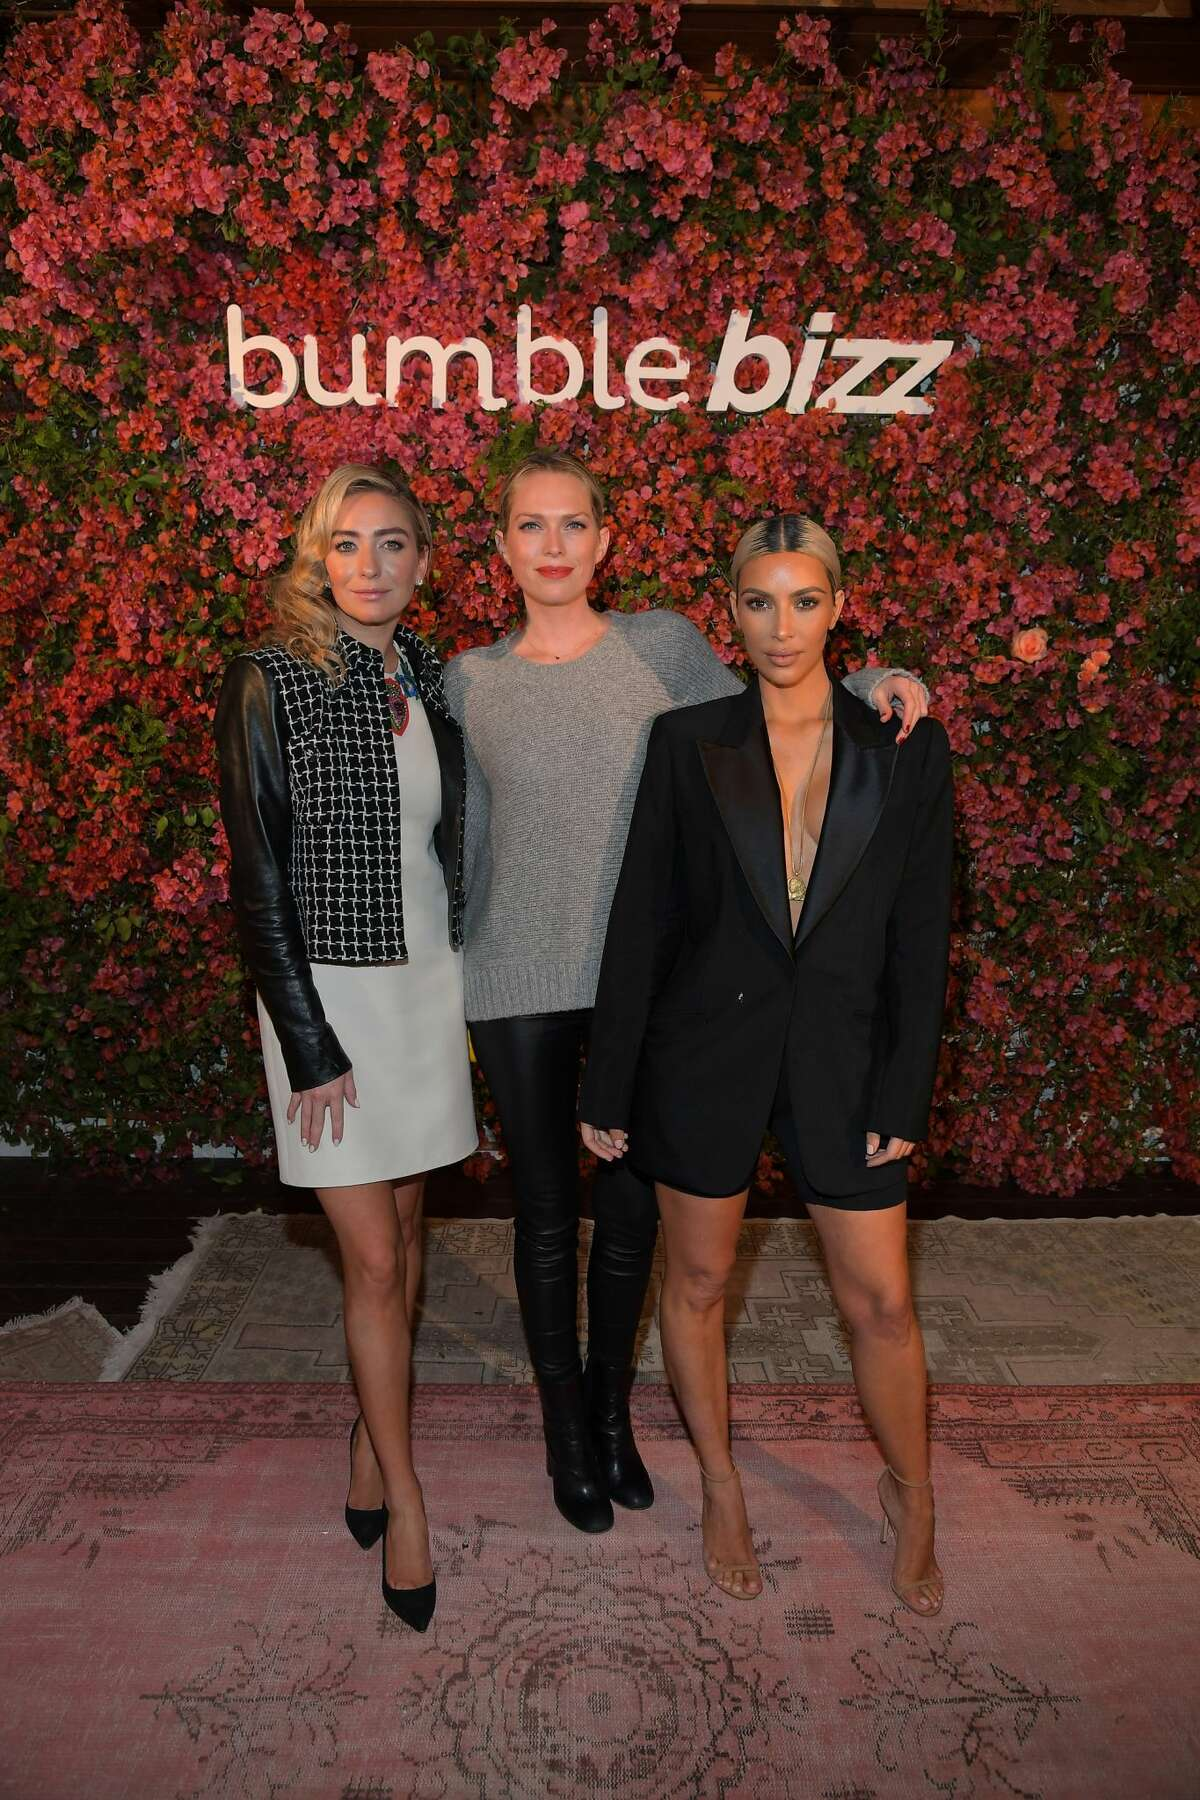 Whitney Wolfe Herd, Erin Foster, and Kim Kardashian attend Bumble Bizz Los Angeles Launch Dinner At Nobu Malibu at Nobu Malibu. Herd is known for living a lavish lifestyle and is regularly photographed with celebrities.